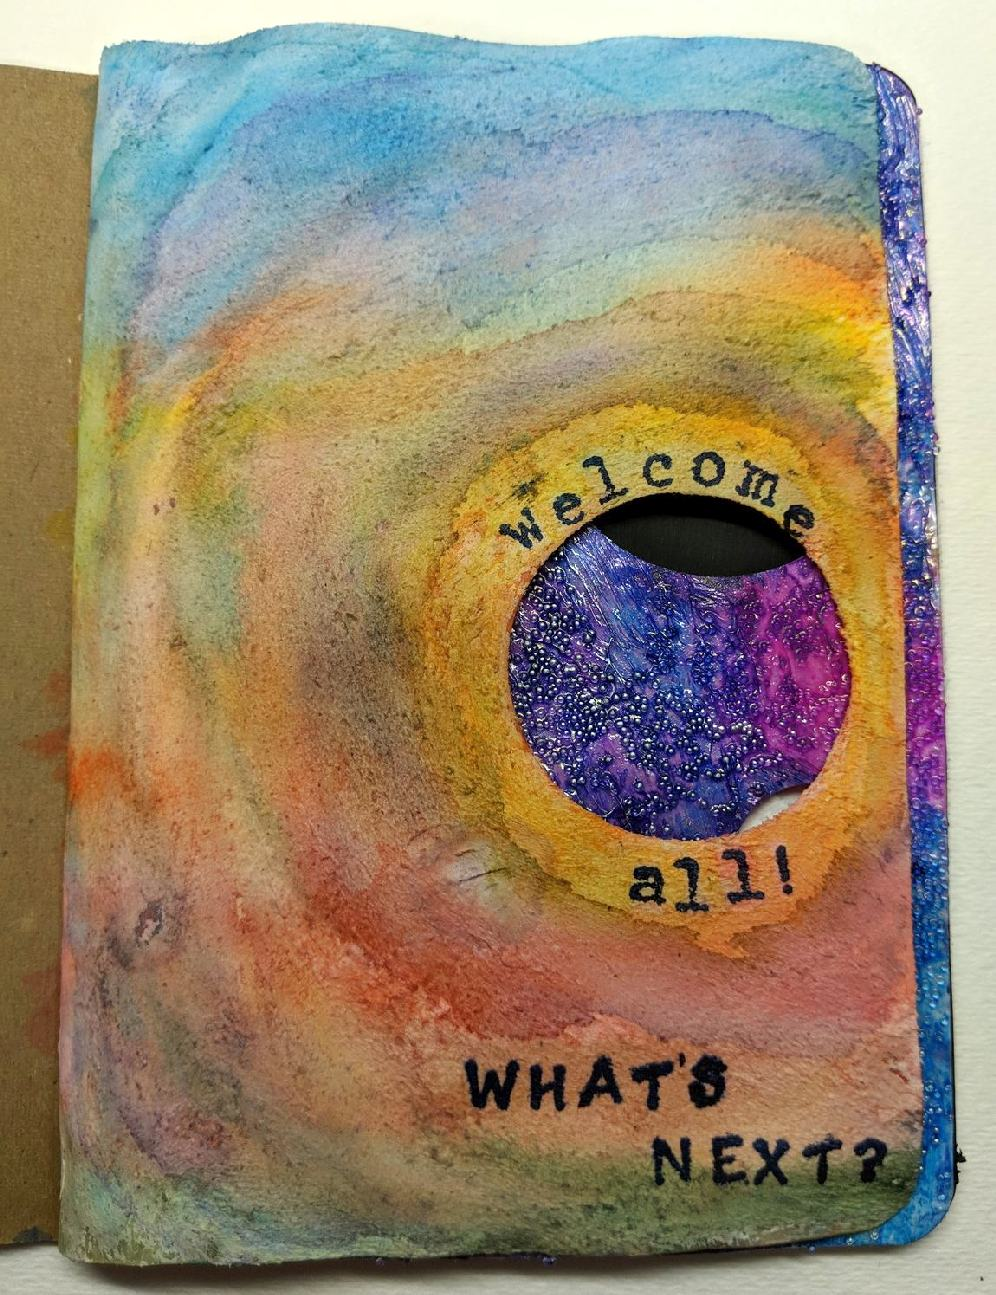 28: The Sketchbook Project